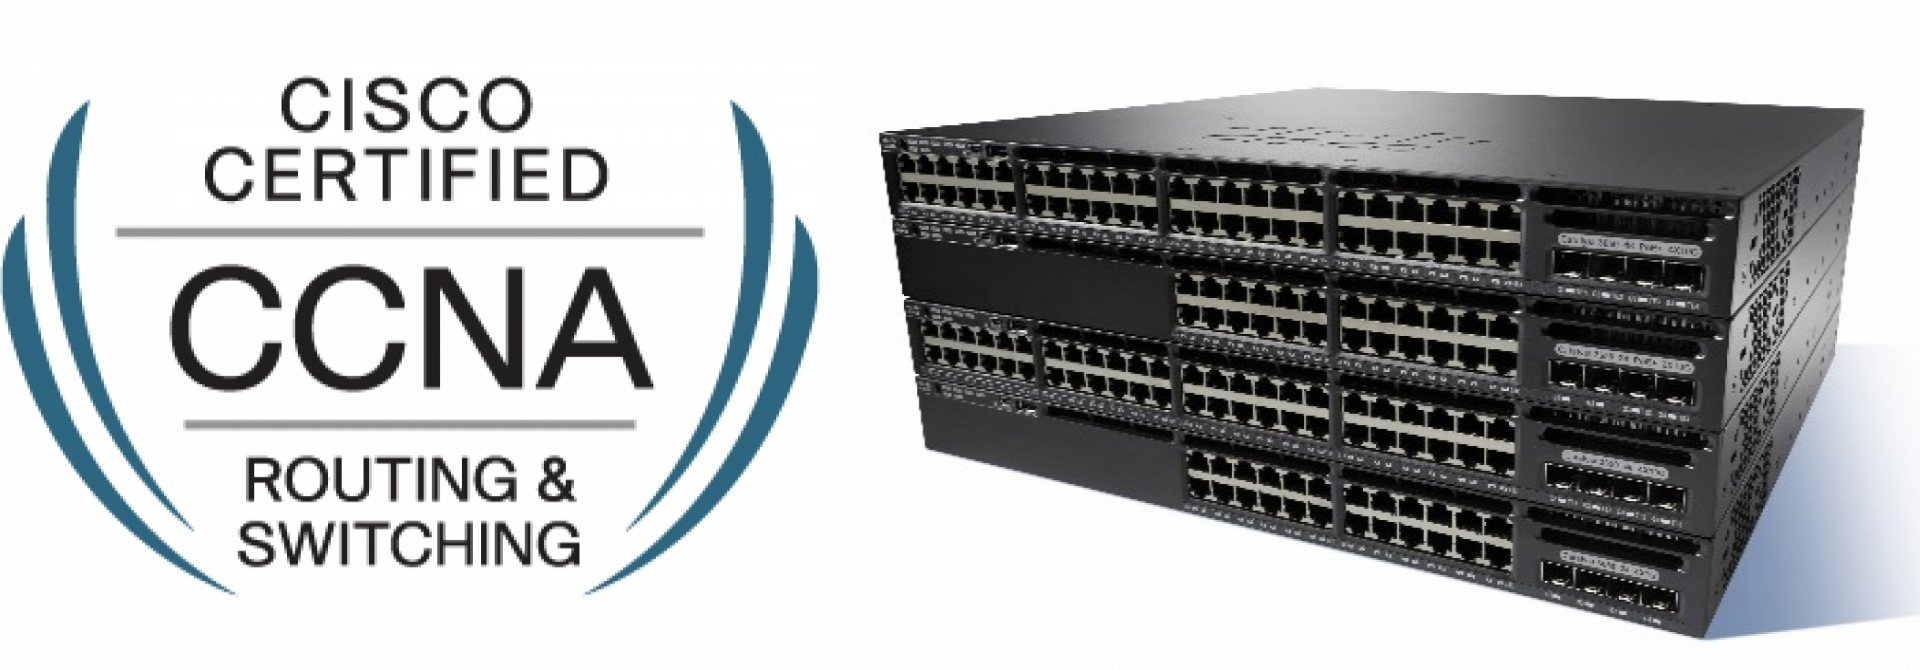 Certificazione Cisco CCNA Routing & Switching